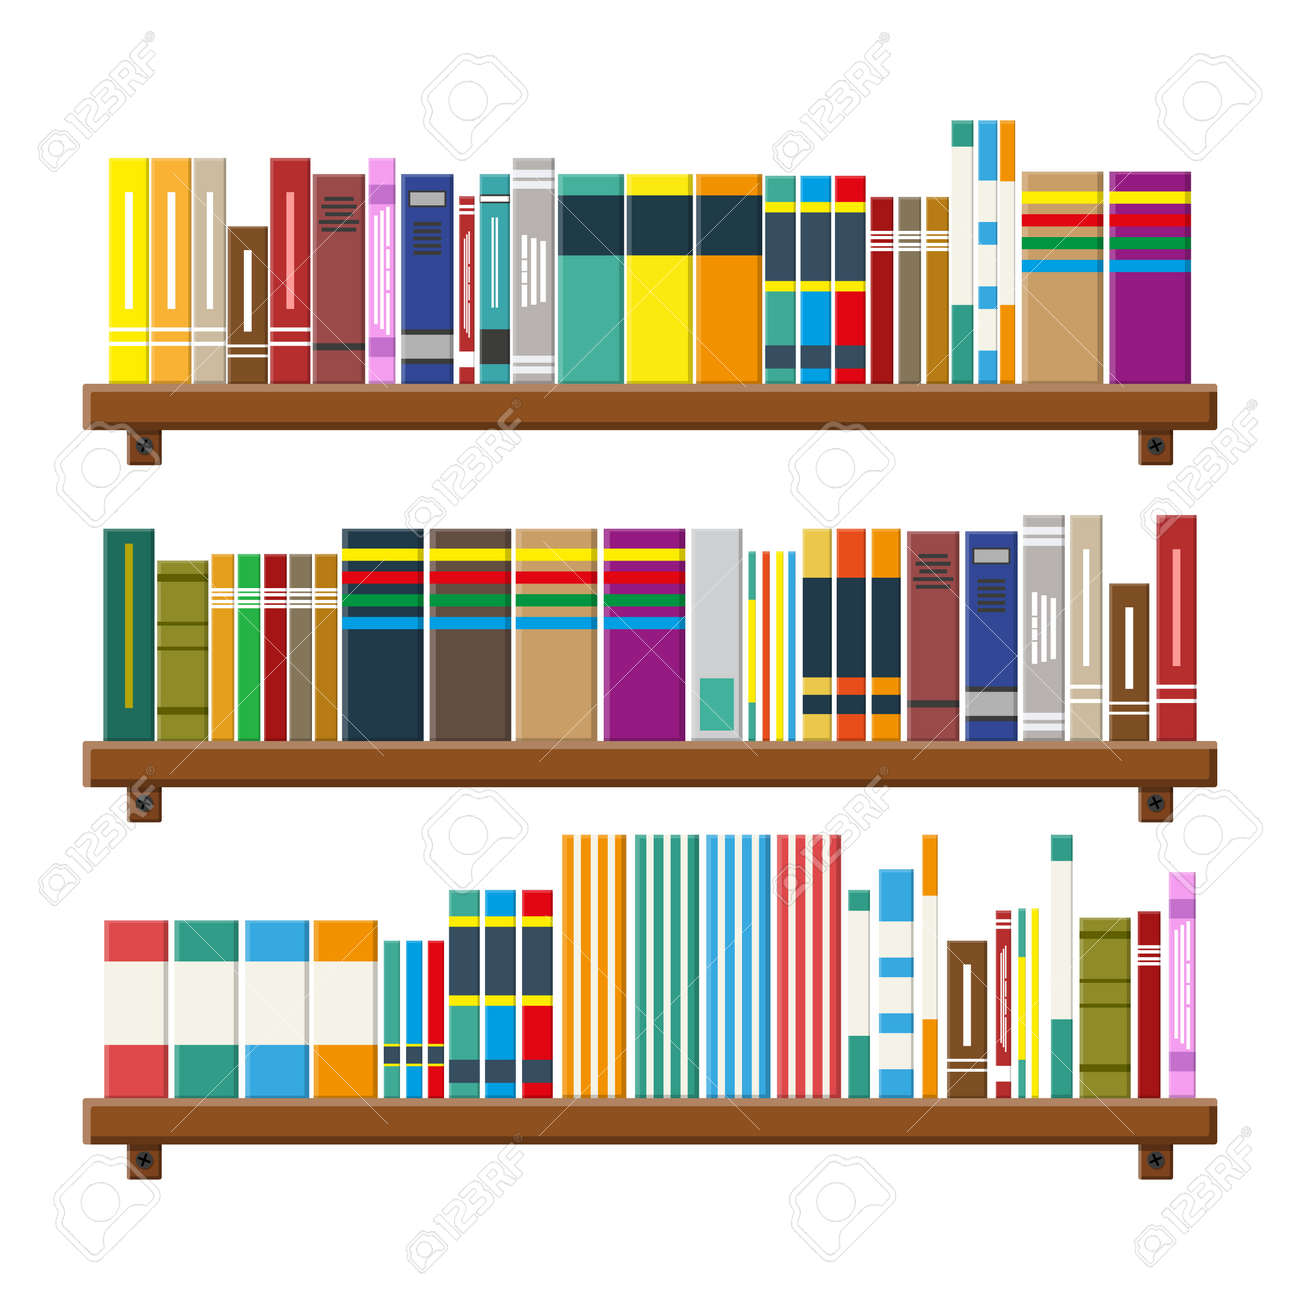 Library Wooden Book Shelf Bookcase With Different Books Vector